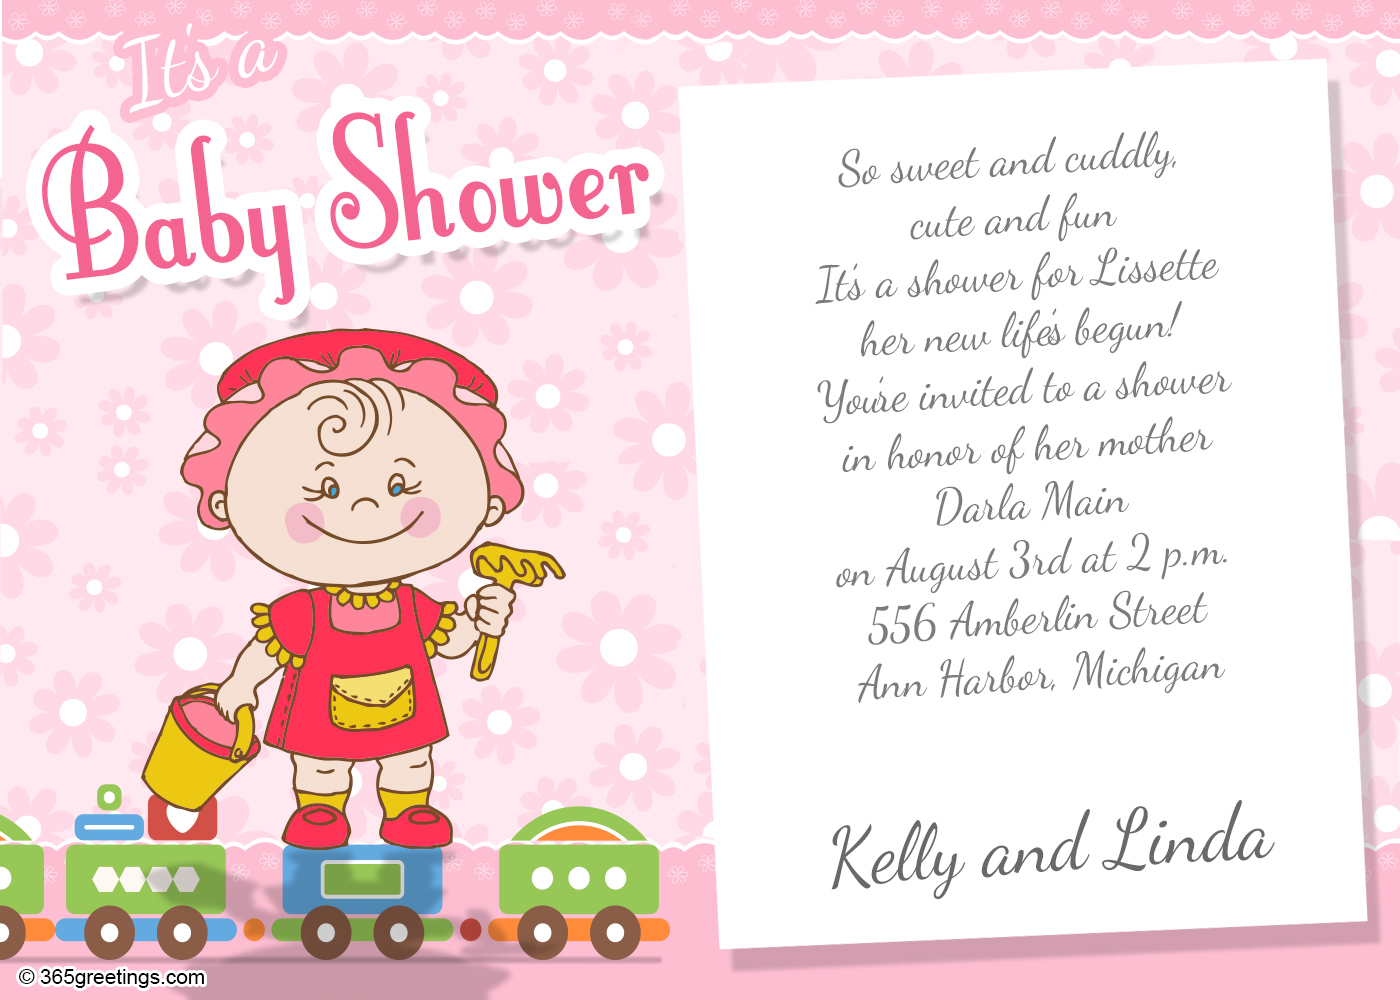 Baby Shower Invitation Wording For Girl 365greetings Com